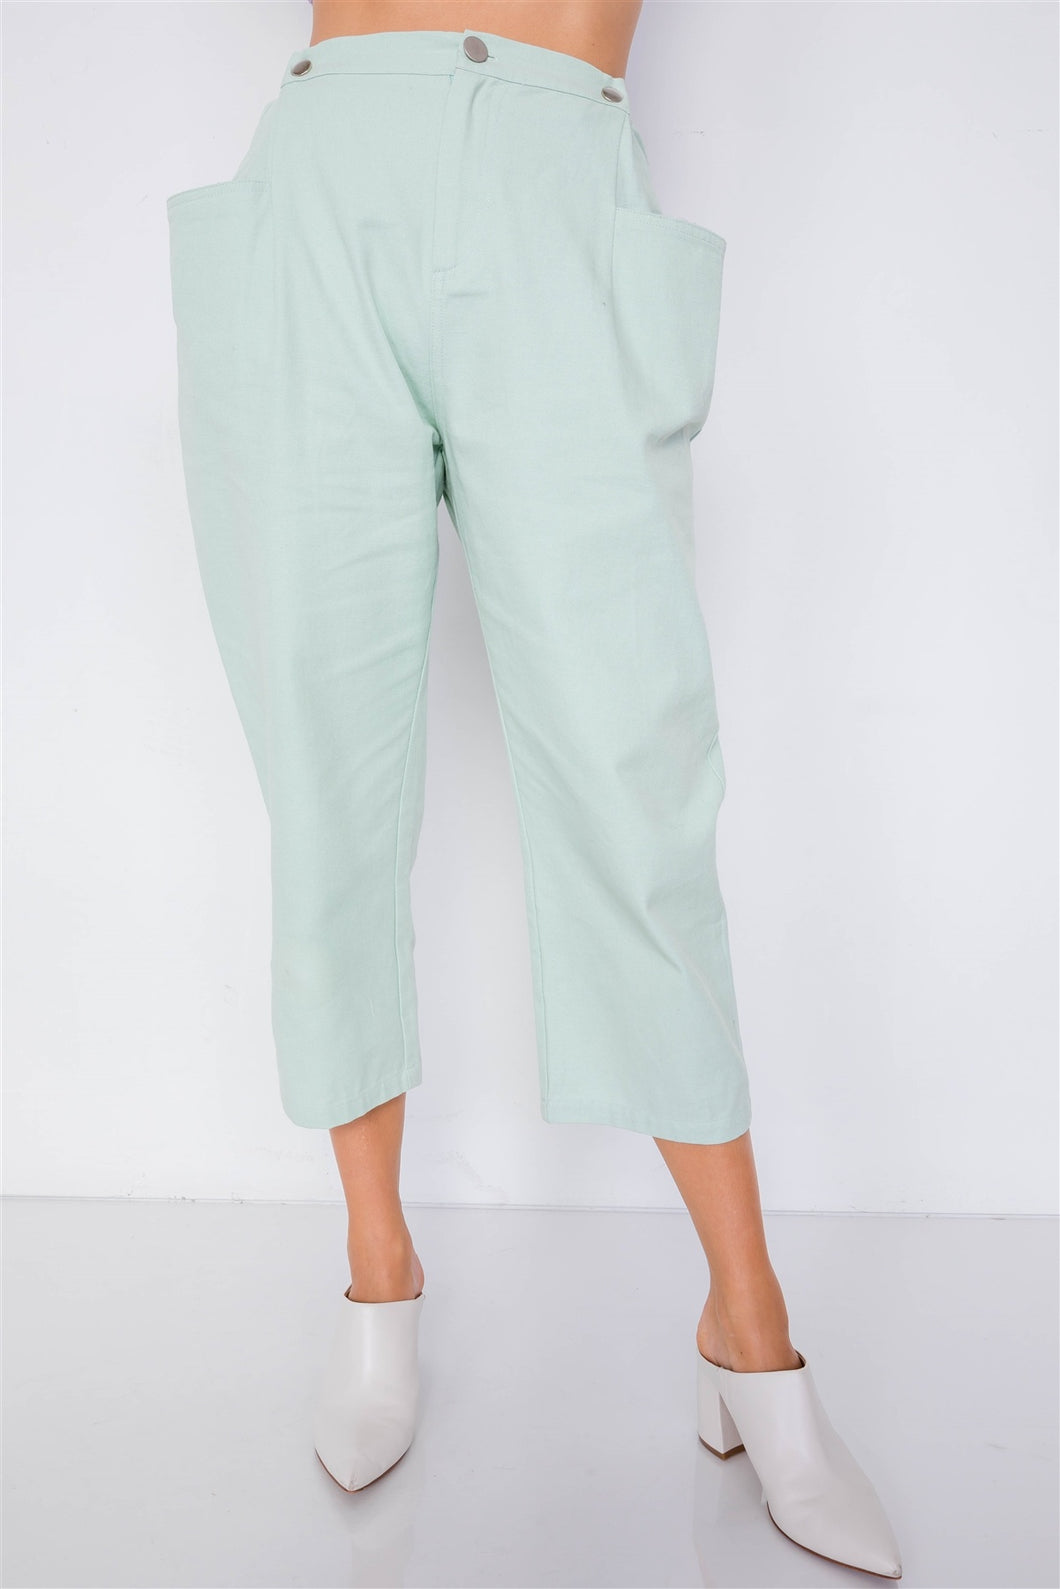 Pastel Chic Solid Ankle Wide Leg Adjustable Snap Waist Pants